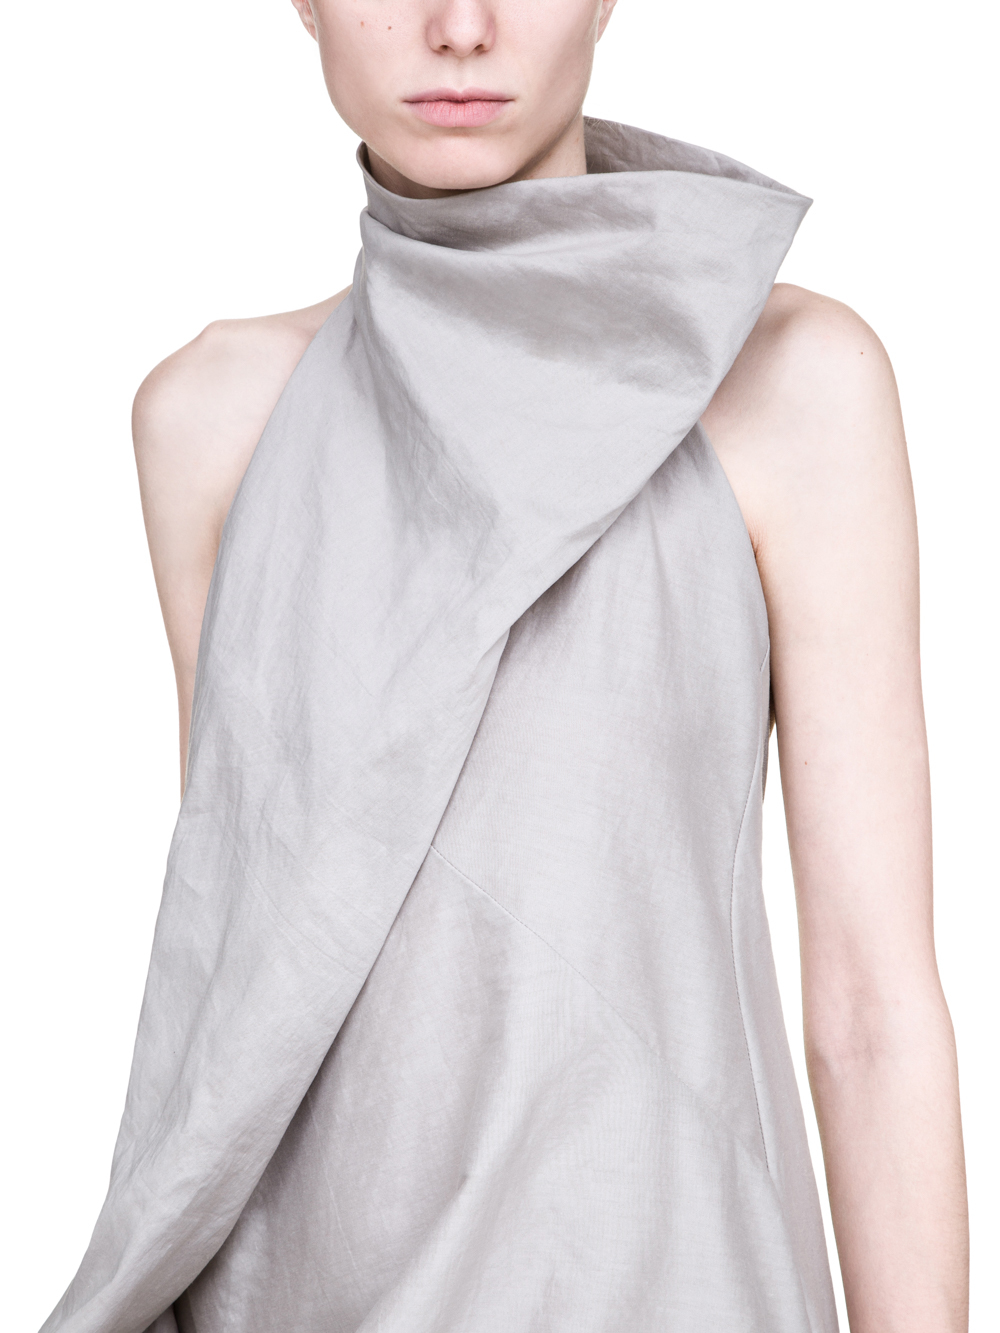 RICK OWENS SS19 BABEL ELLIPSE TUNIC IN OYSTER LIGHT GREY SILK COTTON